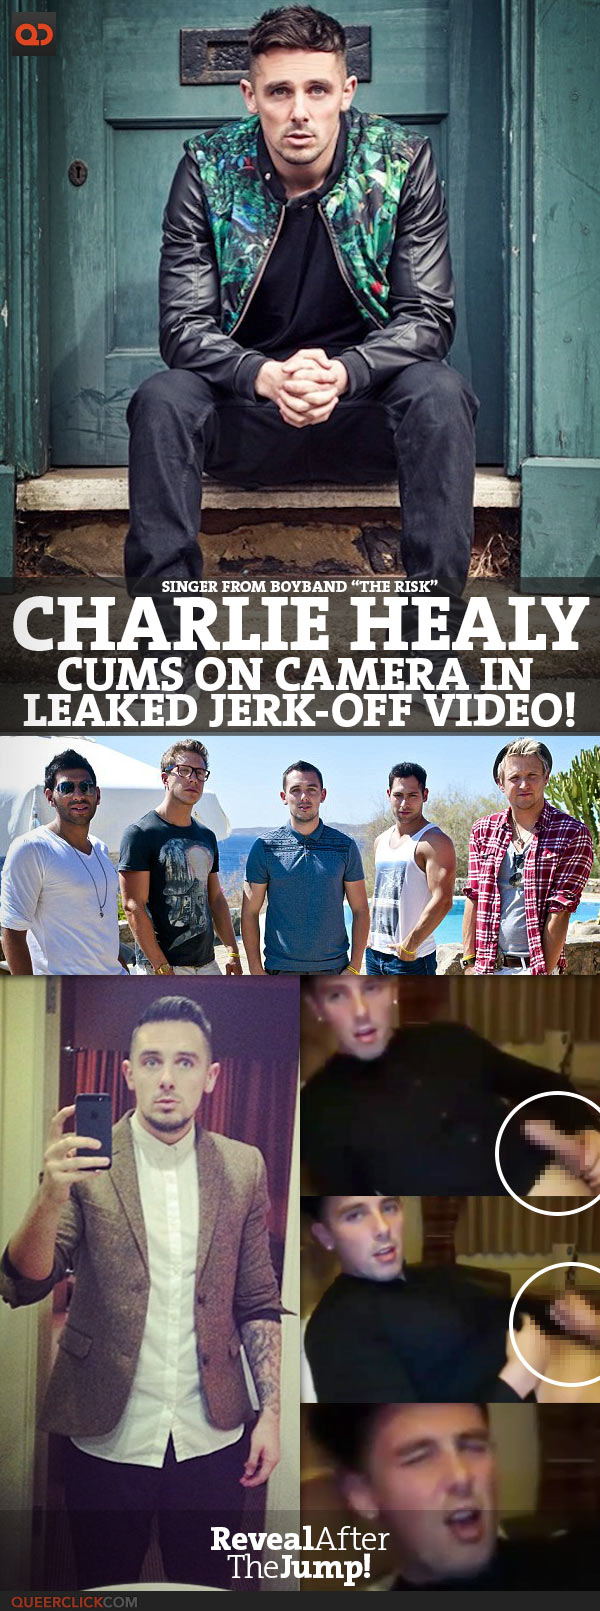 """Charlie Healy, Singer From Boyband """"The Risk"""", Cums On Camera In Leaked Jerk-Off Video!"""